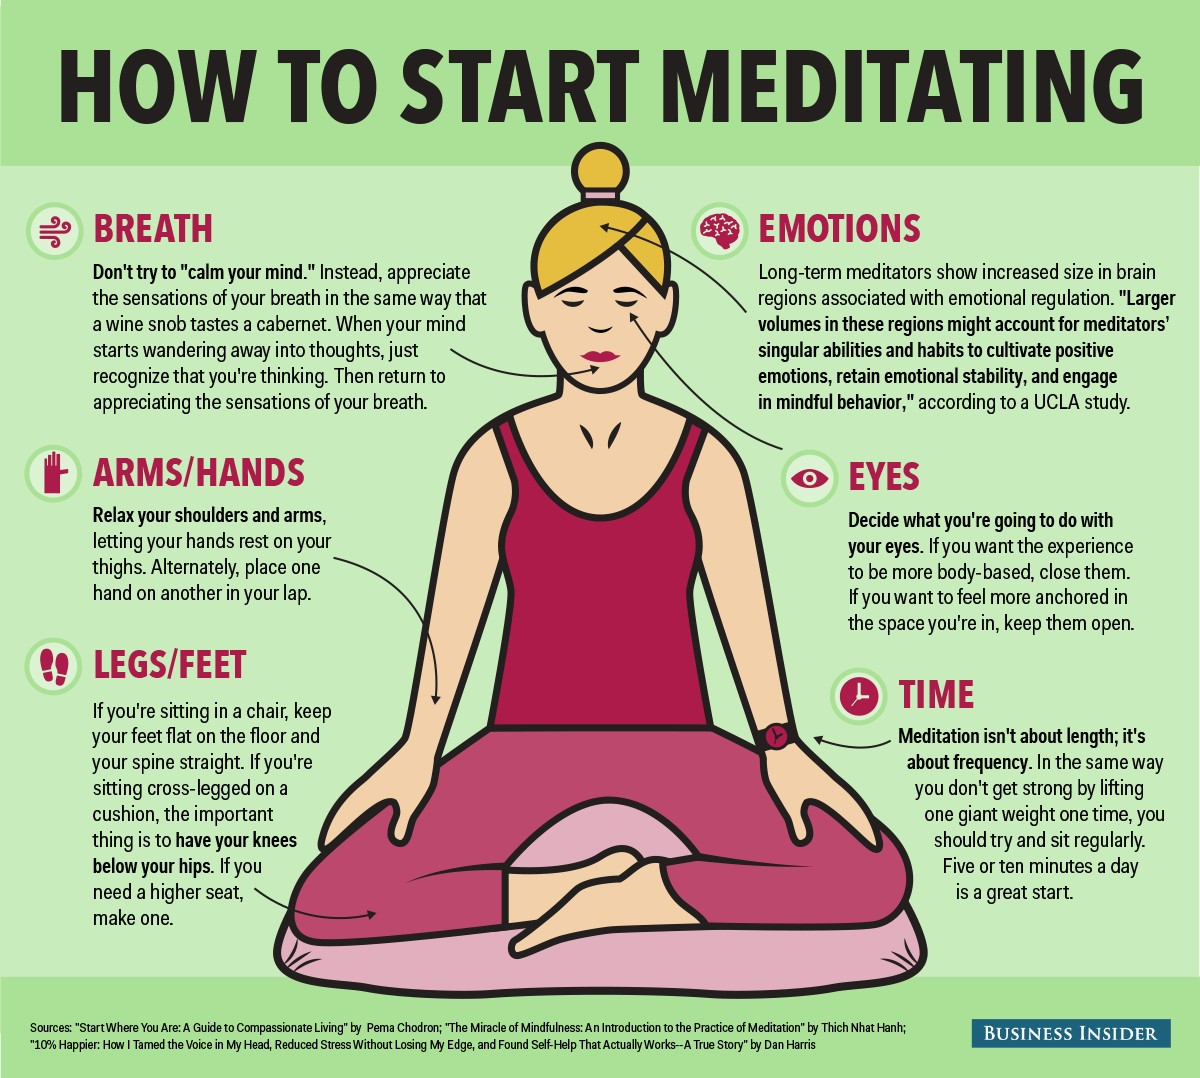 Study Reveals Benefits of Vacation and Meditation